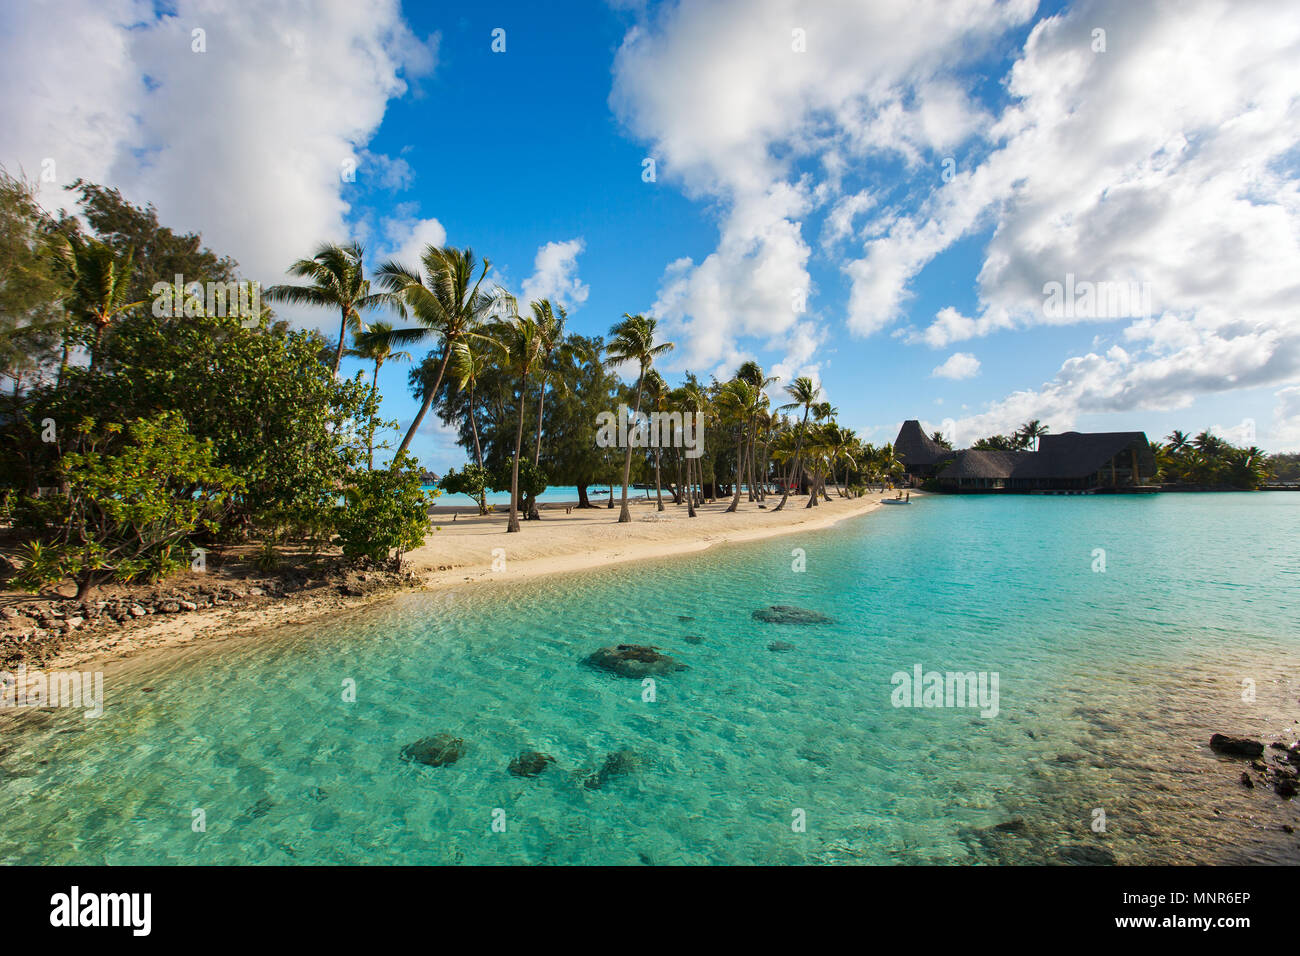 Beautiful beach with coconut palms on Bora Bora island in French Polynesia - Stock Image